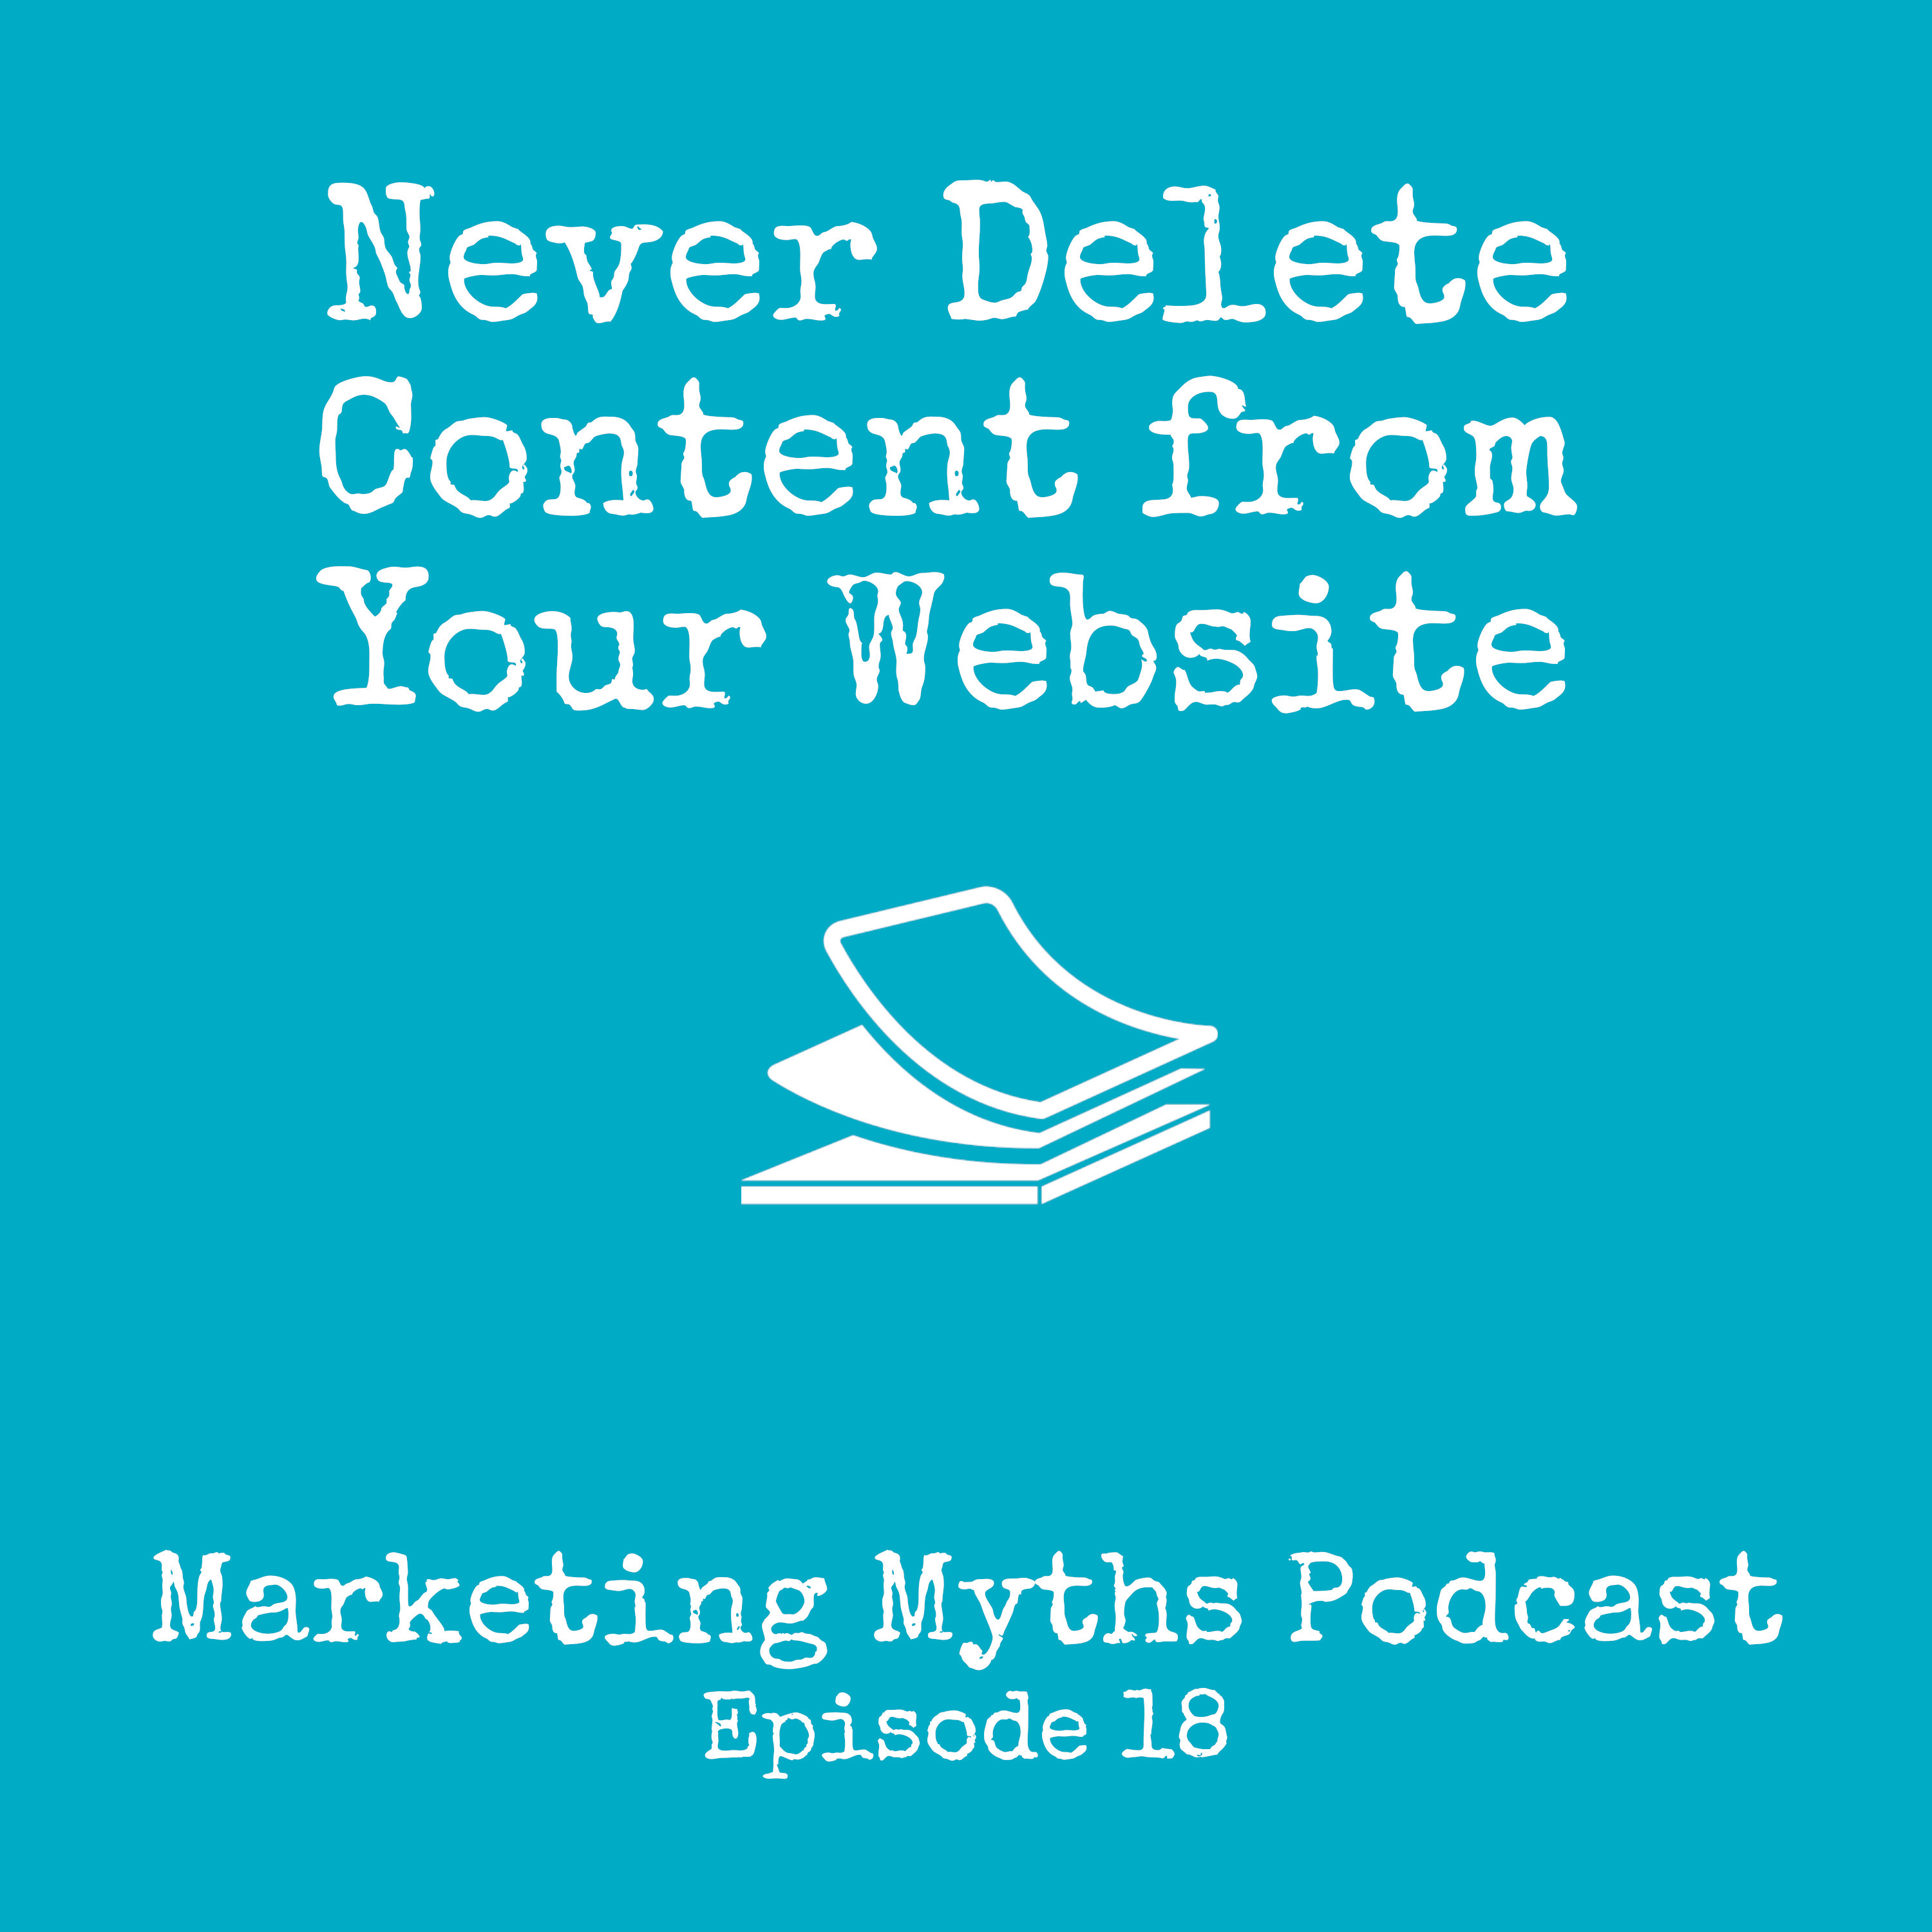 Never Delete Content from Your Website